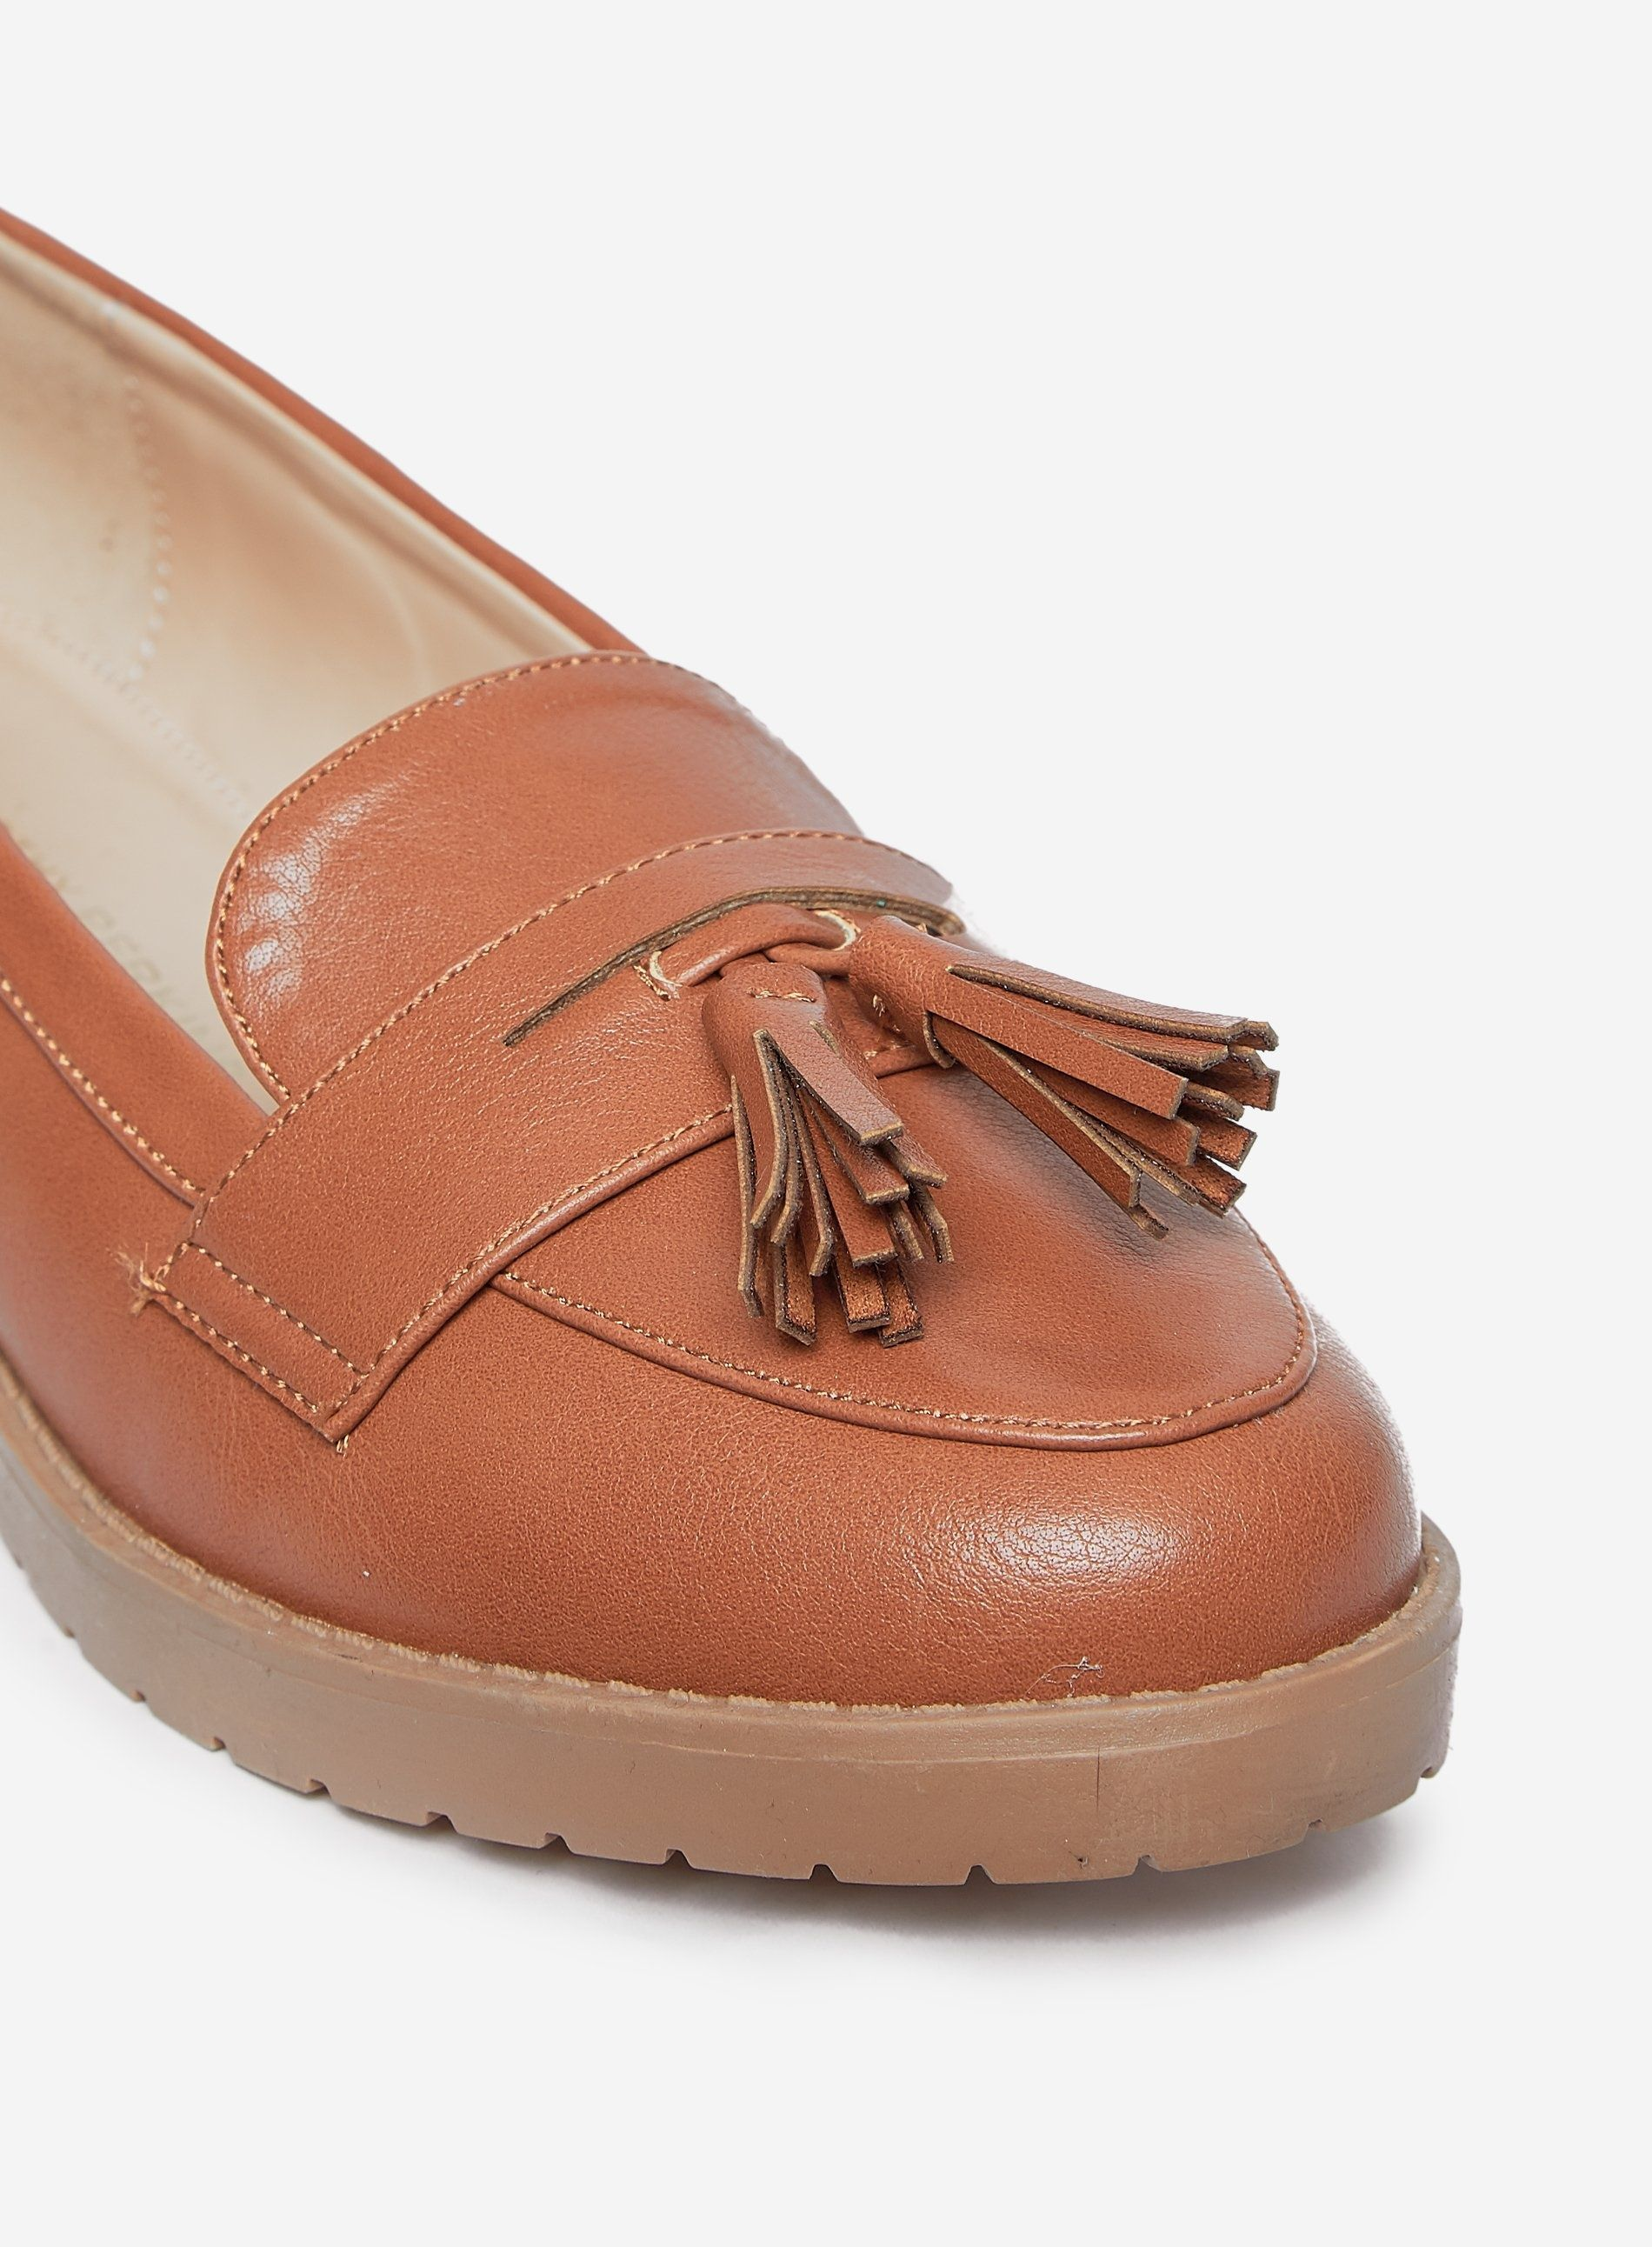 Dorothy Perkins Womens Wide Fit Brown Litty Loafers Slip On Flat Round Toe Shoes